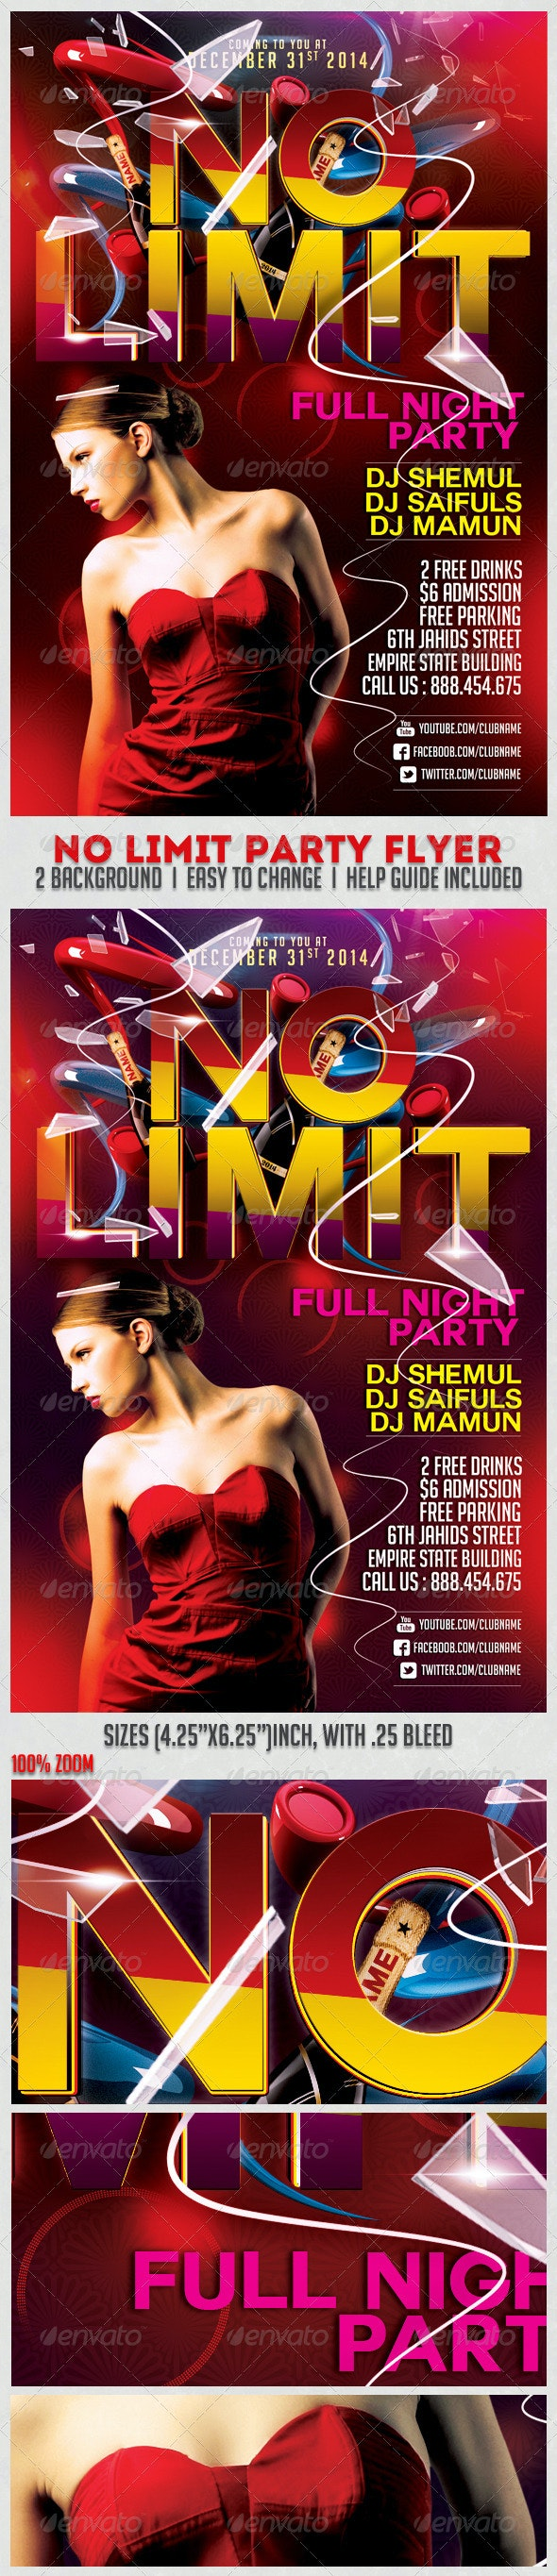 No Limit Party Flyer Template - Clubs & Parties Events